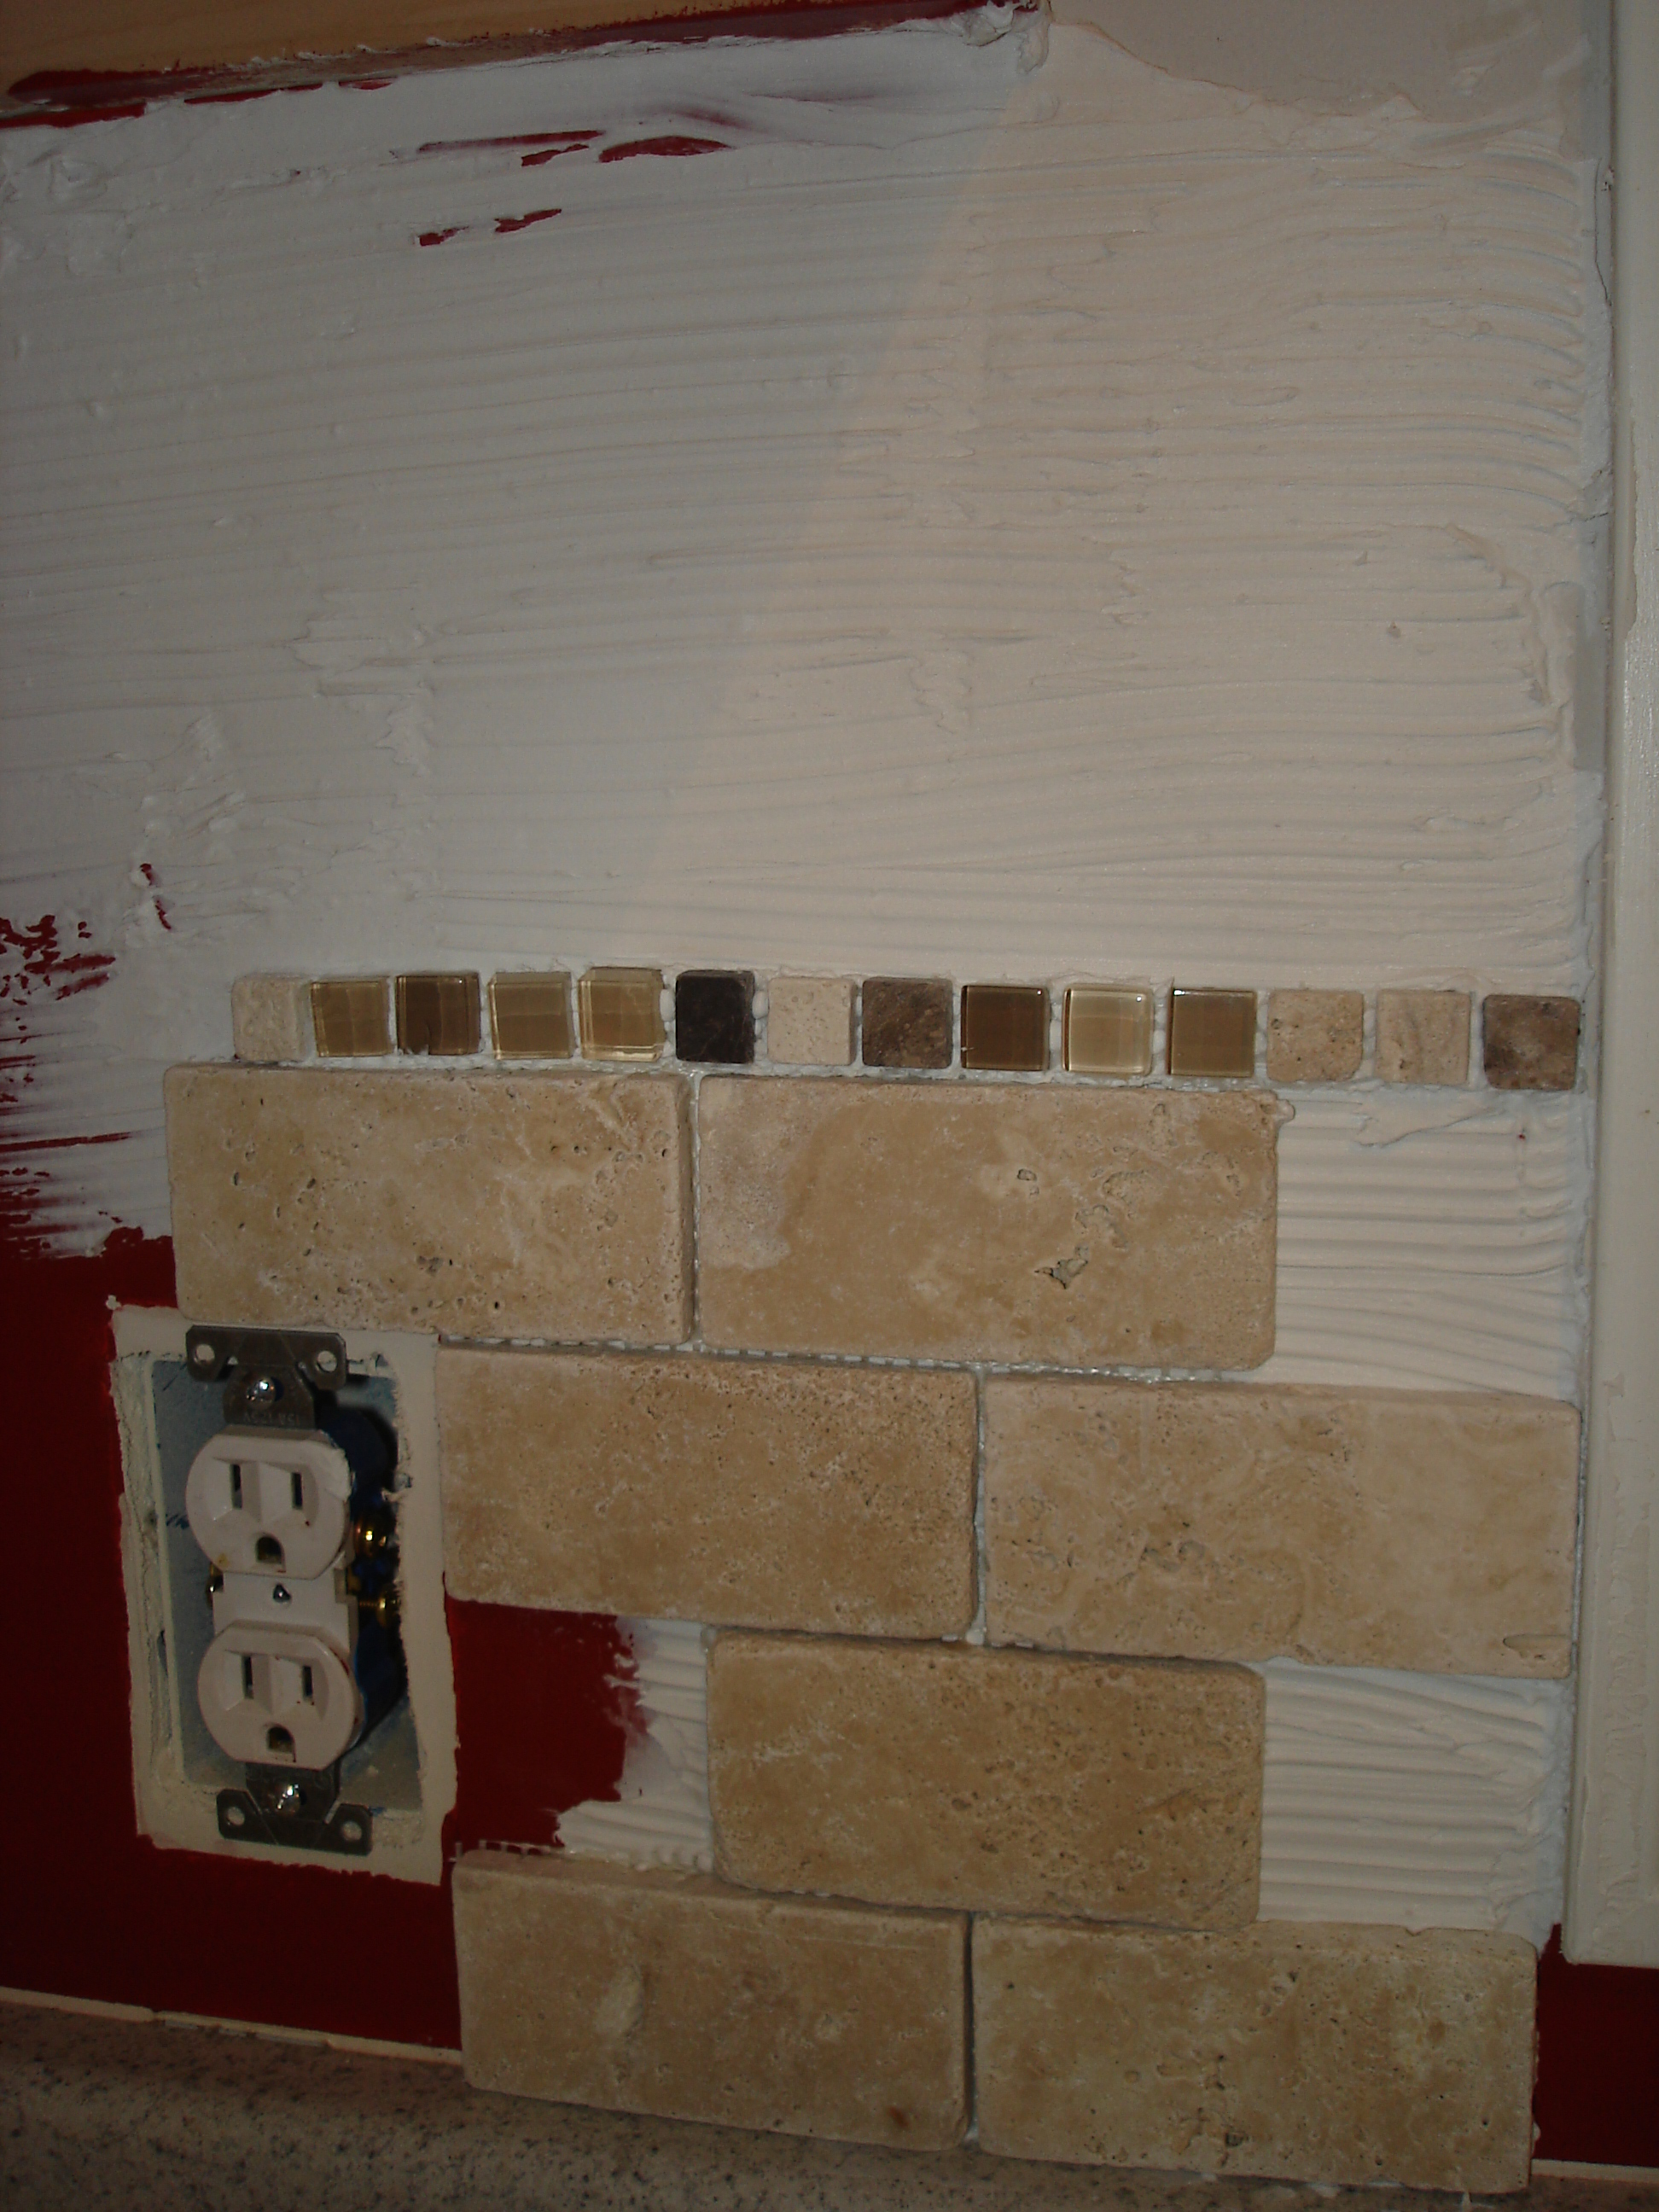 granite backsplash removal tile backsplash up your granite - Removing Tile Backsplash